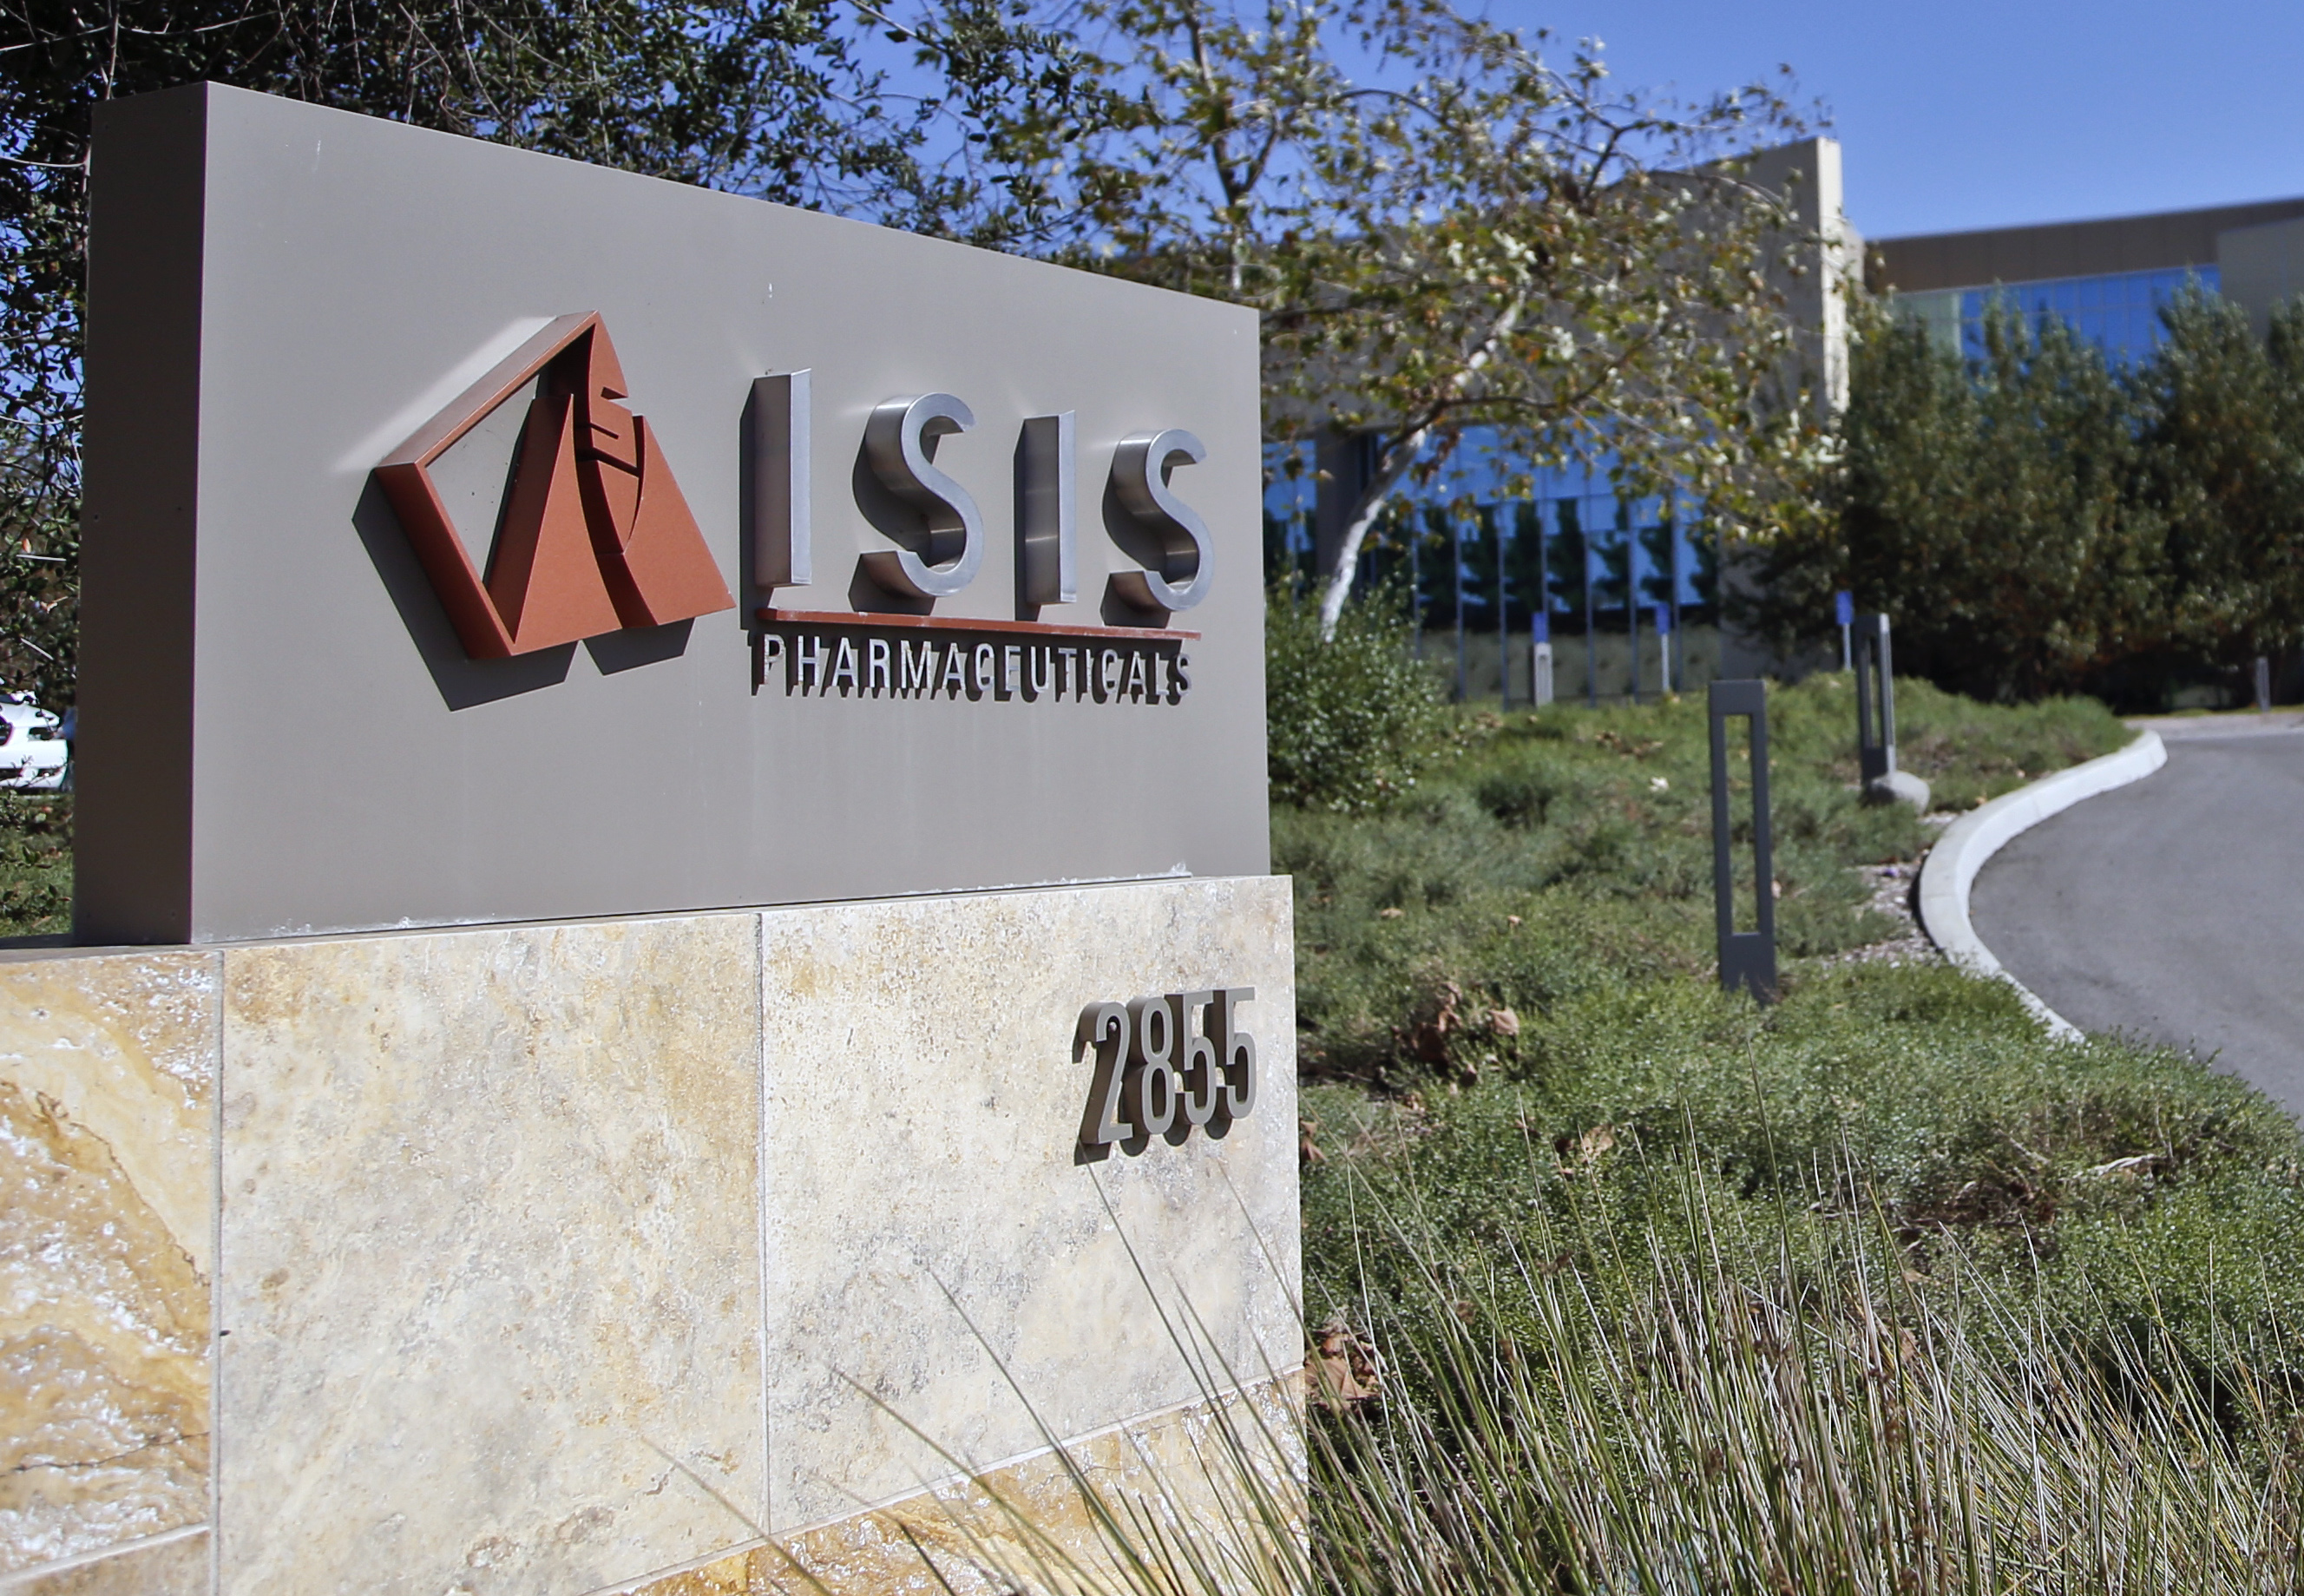 Isis Pharmaceuticals Inc. in Carlsbad, Calif., Sept. 29, 2014.